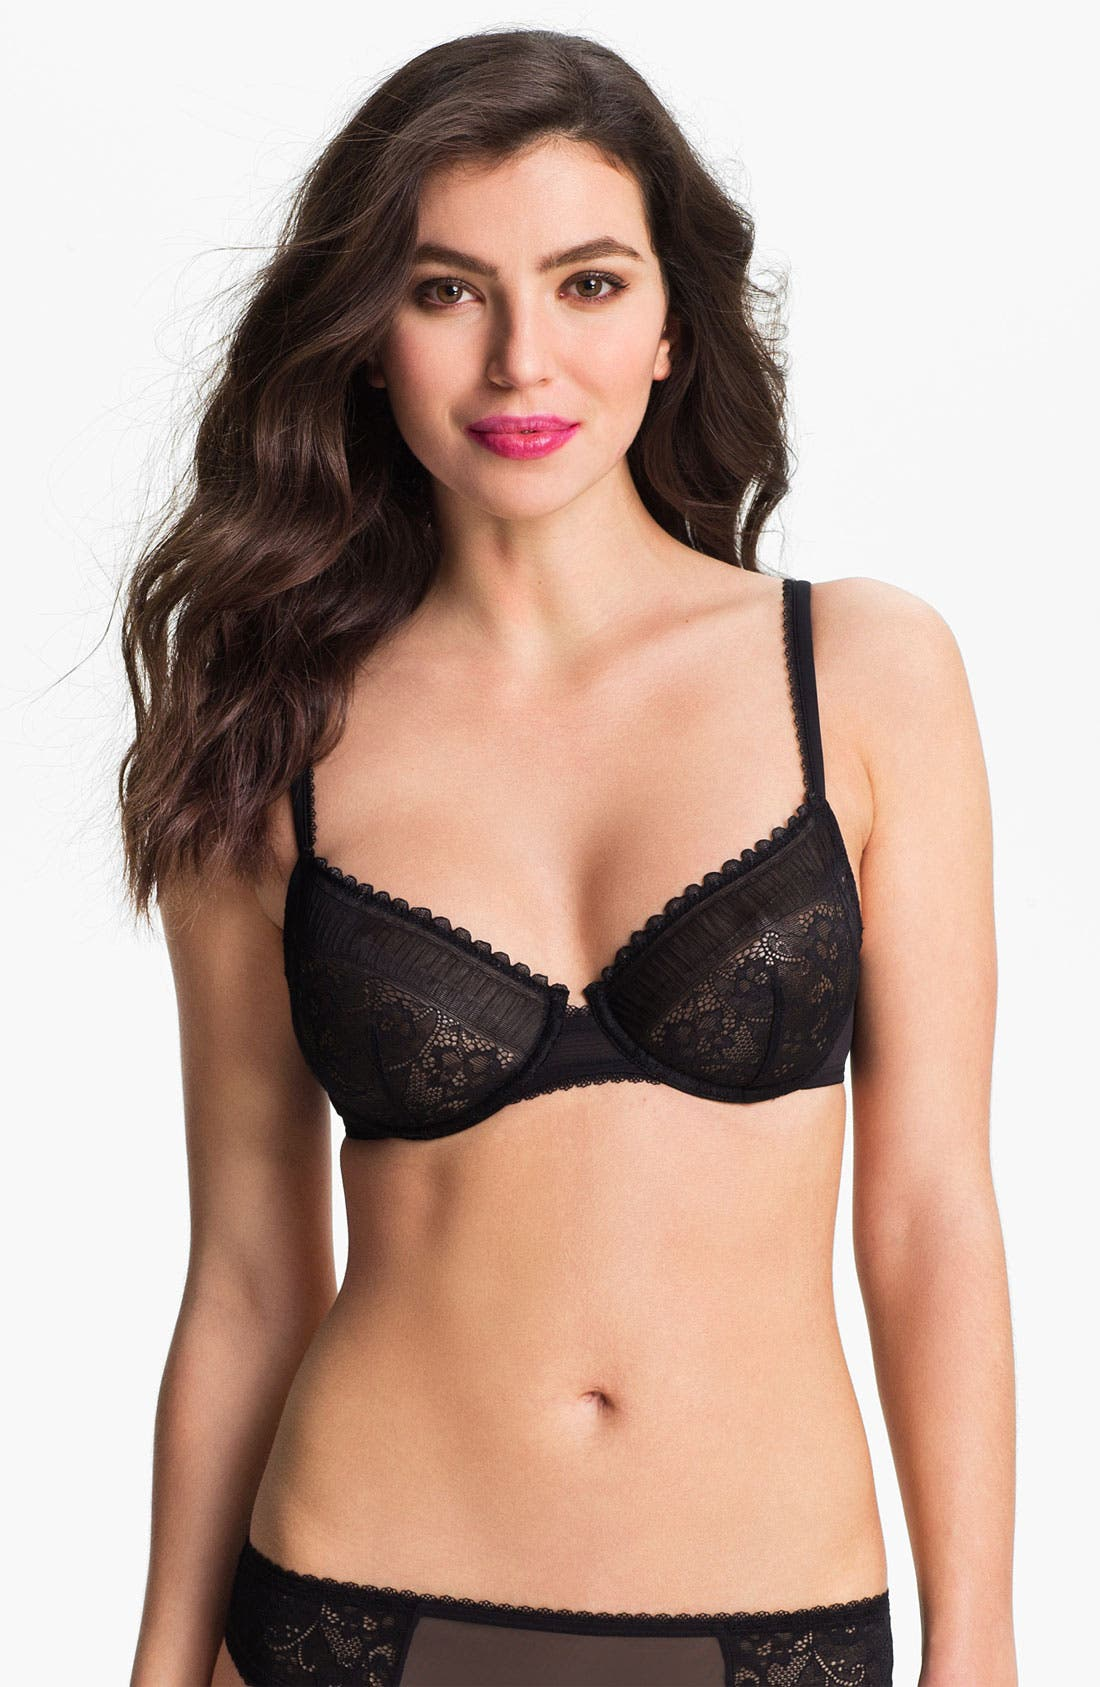 Main Image - La Perla 'Looking for Love' Underwire Bra